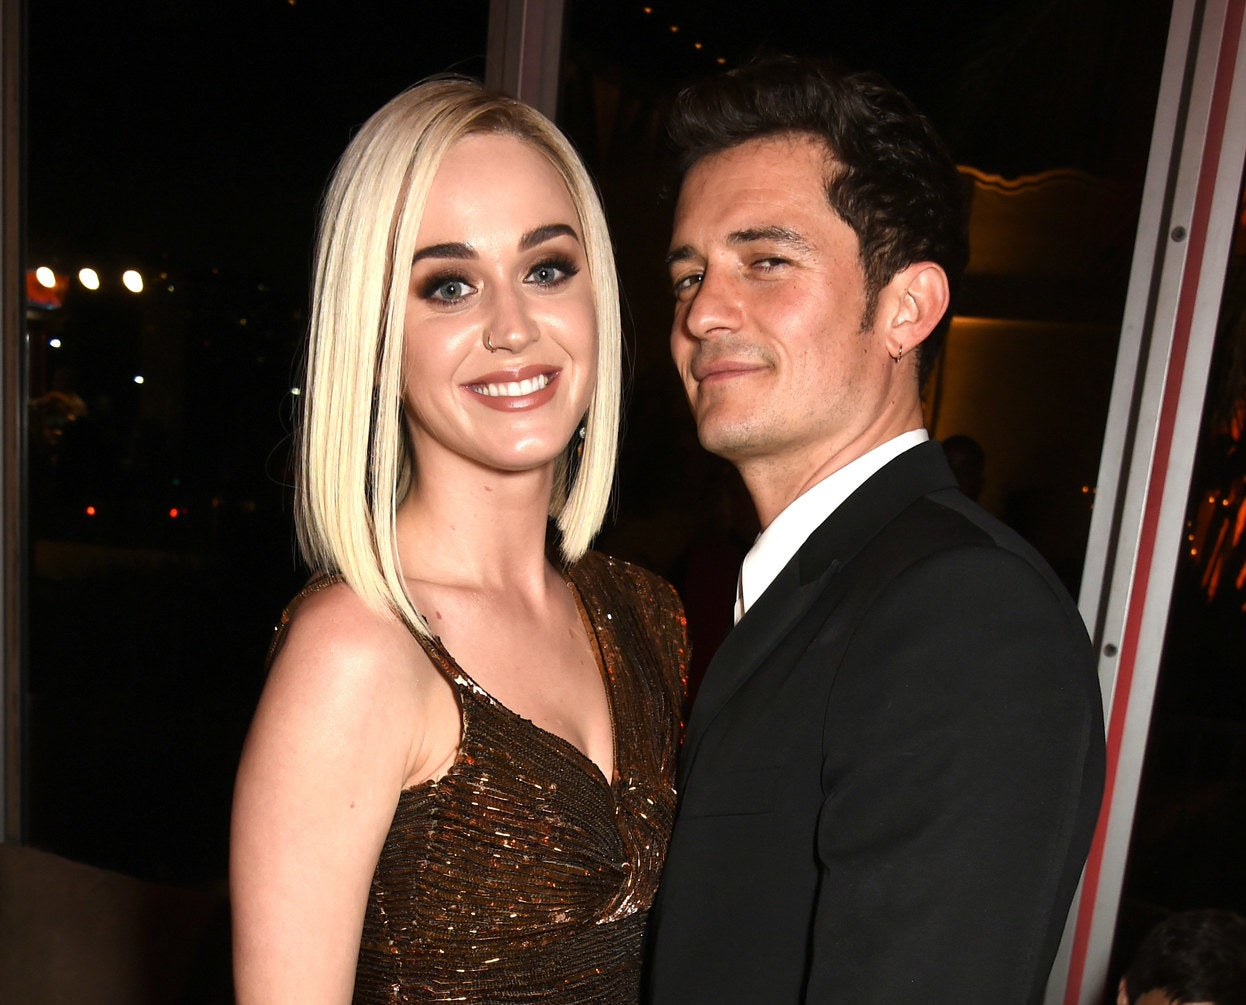 Just two days ago at the Vanity Fair Oscars after-party, everything seemed fine for Katy Perry and Orlando Bloom.